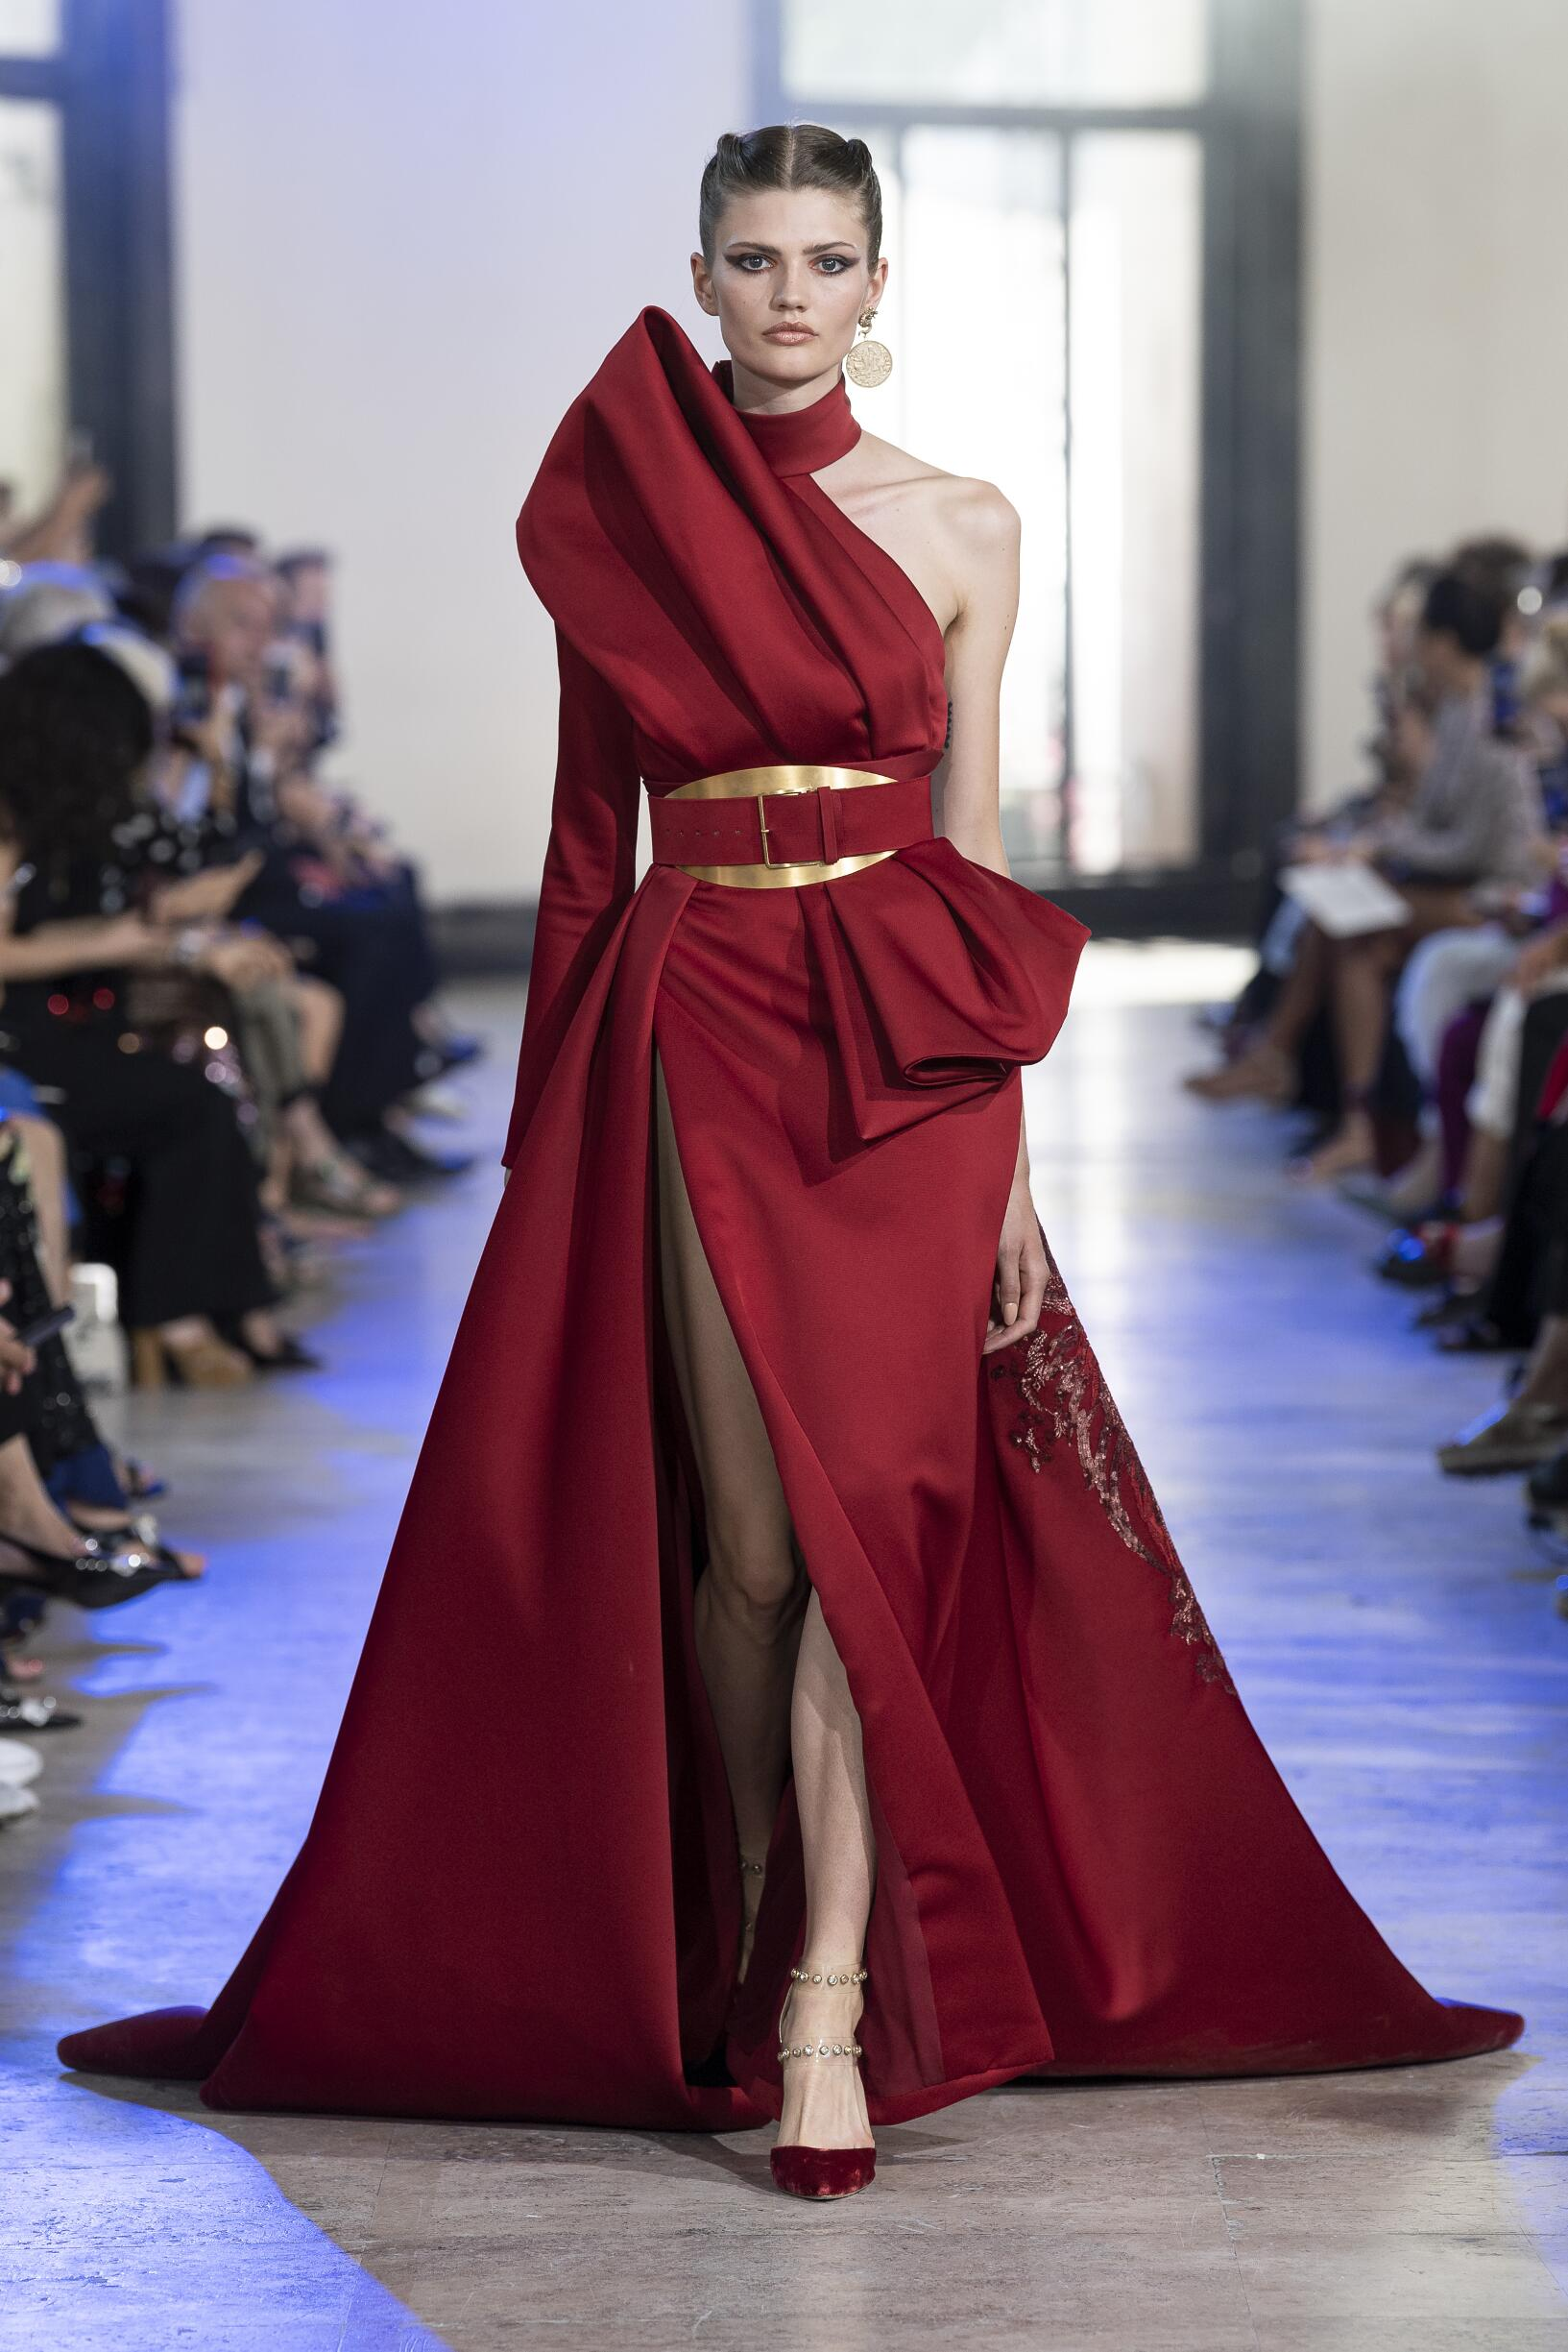 FW 2019-20 Elie Saab Haute Couture Fashion Show